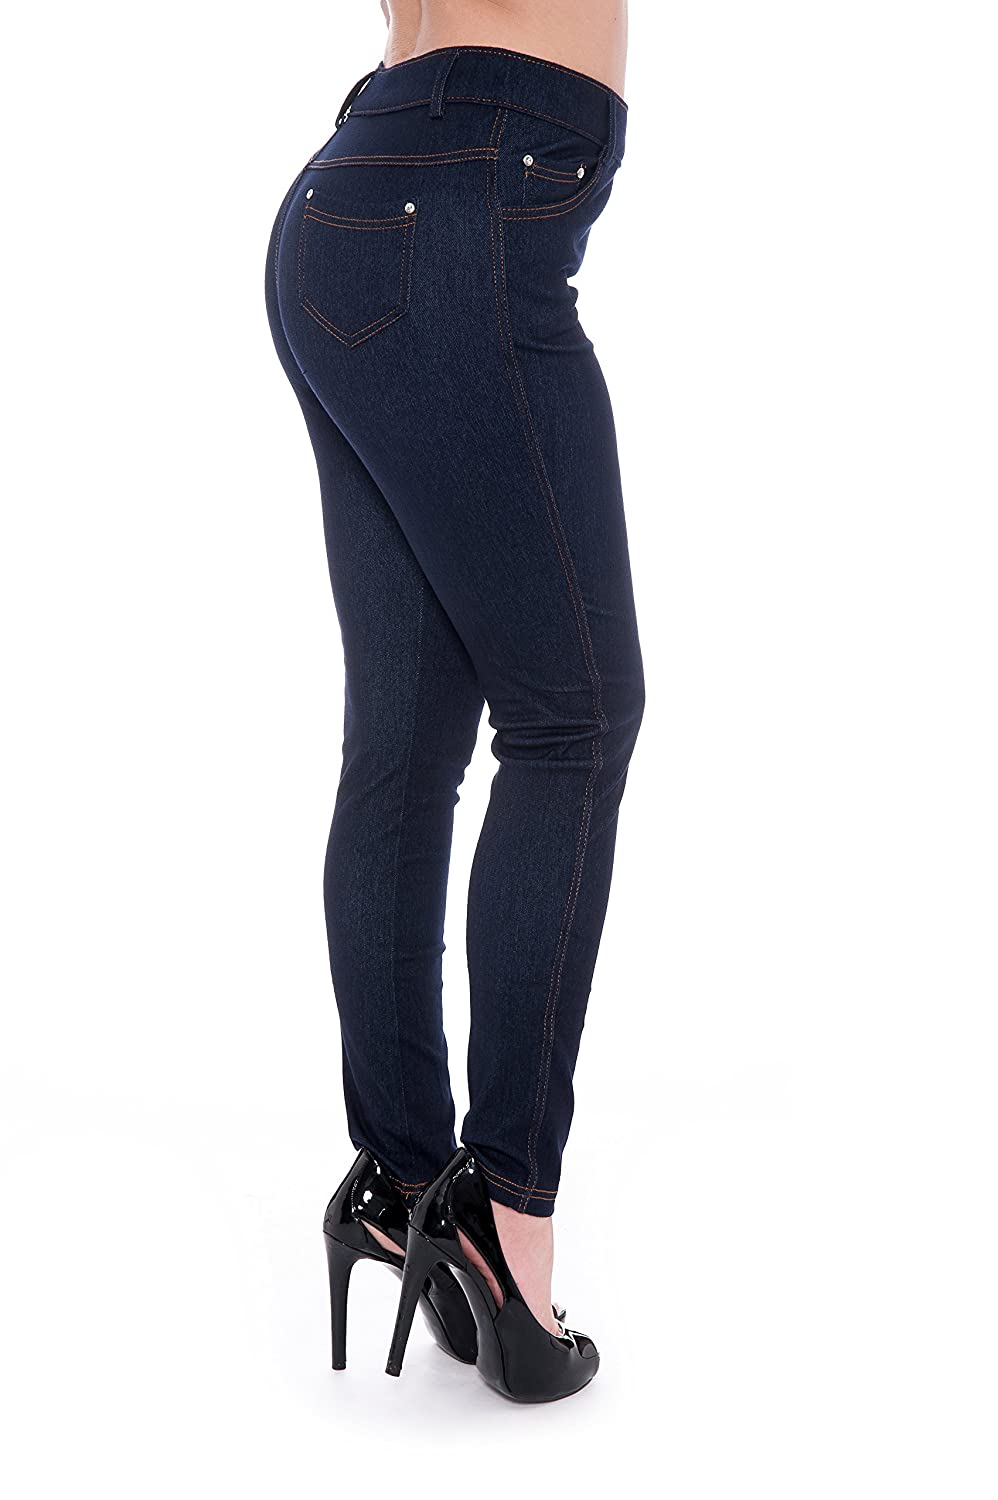 09c946a4fef Unique Styles Women's Basic Jeggings Leggings Stretchy 5 Pockets Pants  Regular Plus Sizes at Amazon Women's Clothing store: